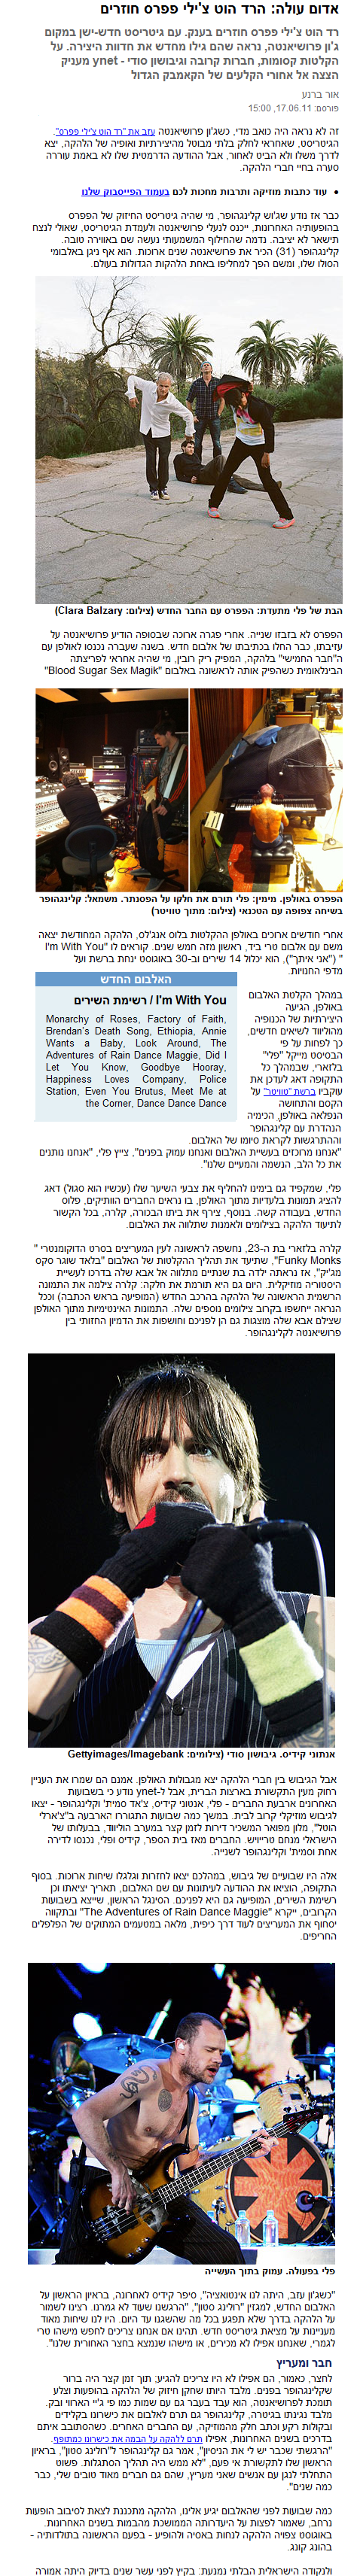 israel RHCP red hot chili peppers